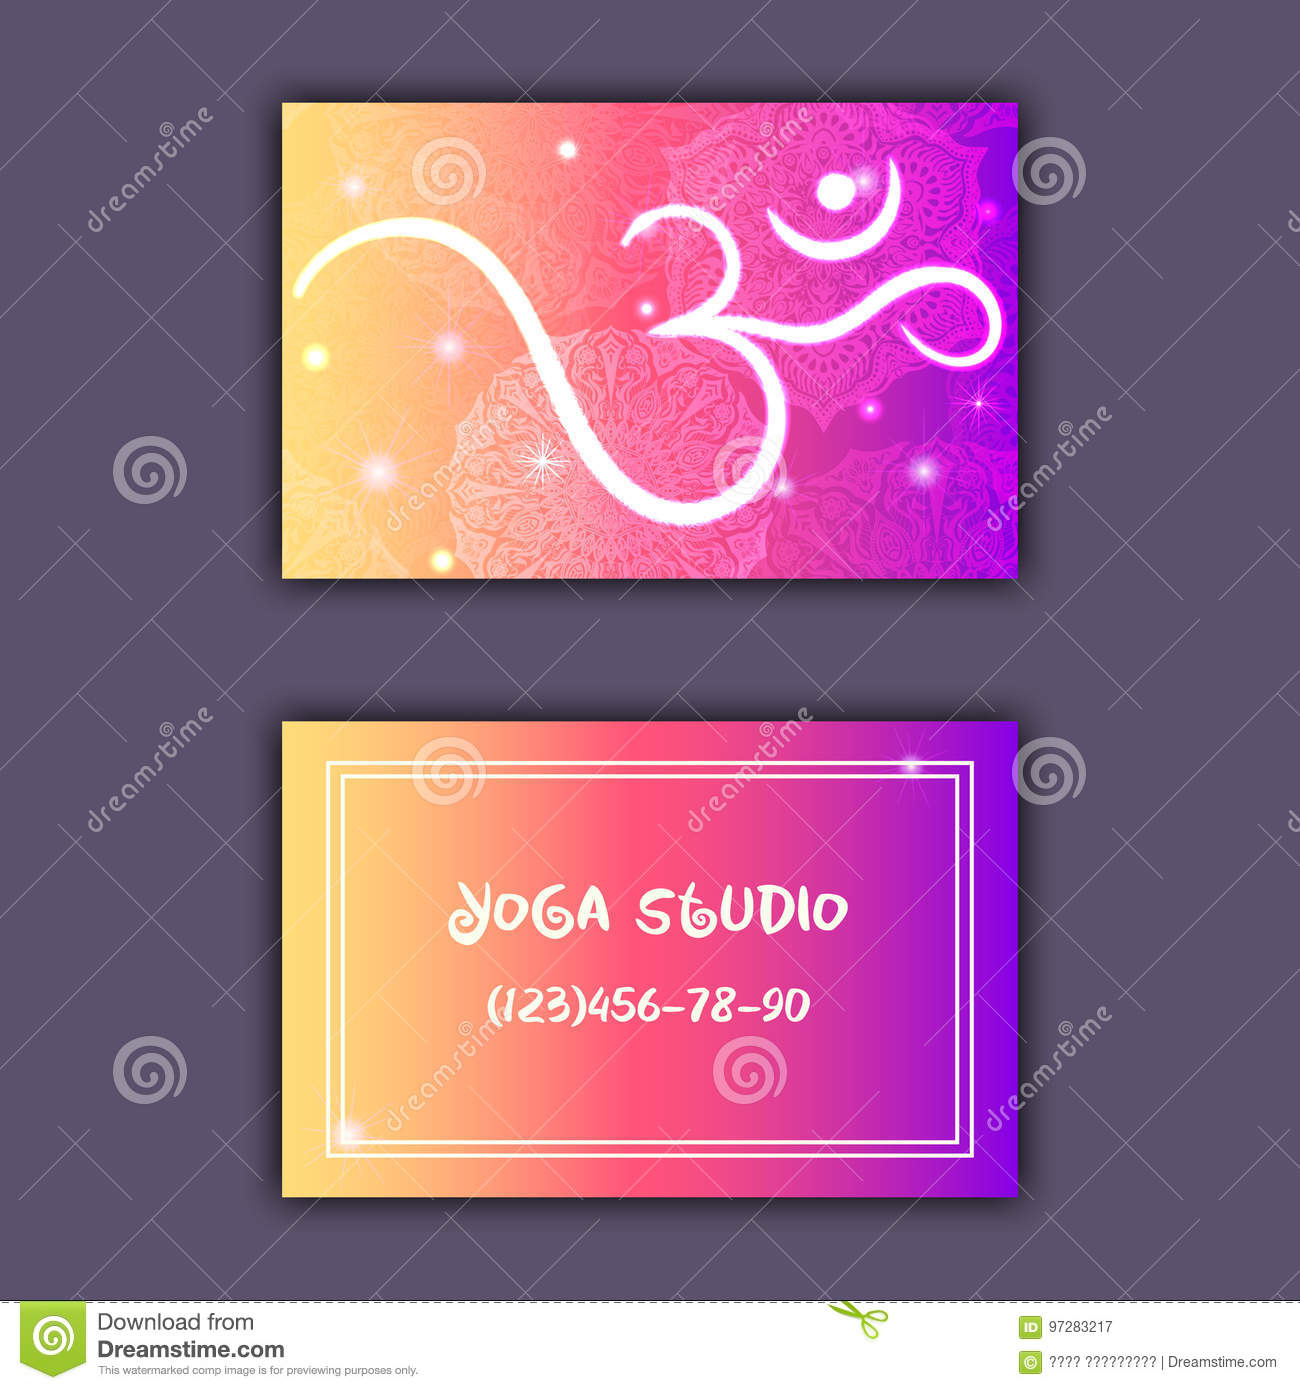 Business card for yoga studio or yoga instructor ethnic background download business card for yoga studio or yoga instructor ethnic background with mandala ornament and reheart Images